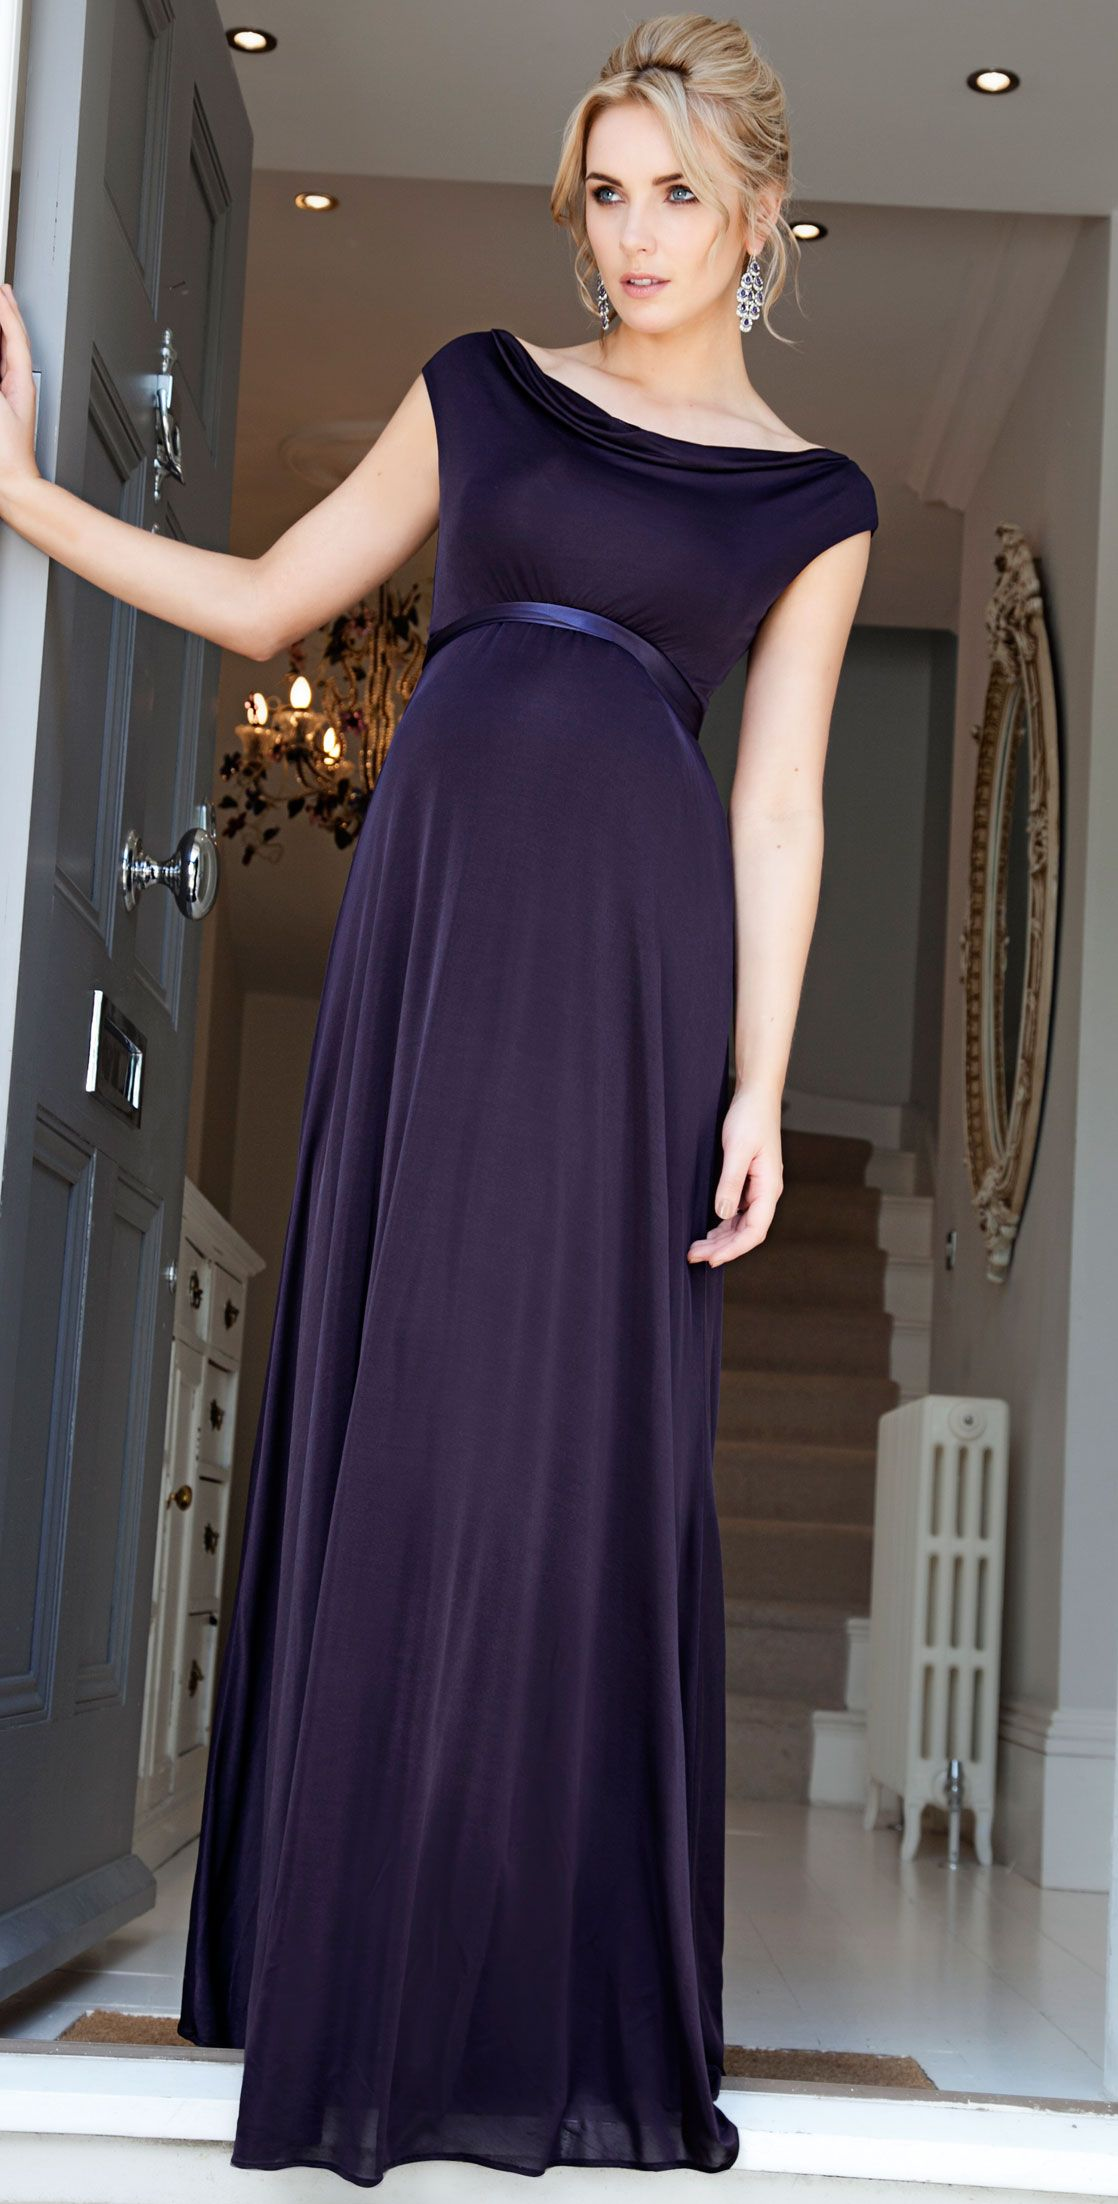 1000  images about Maternity Gown on Pinterest - Maternity ...